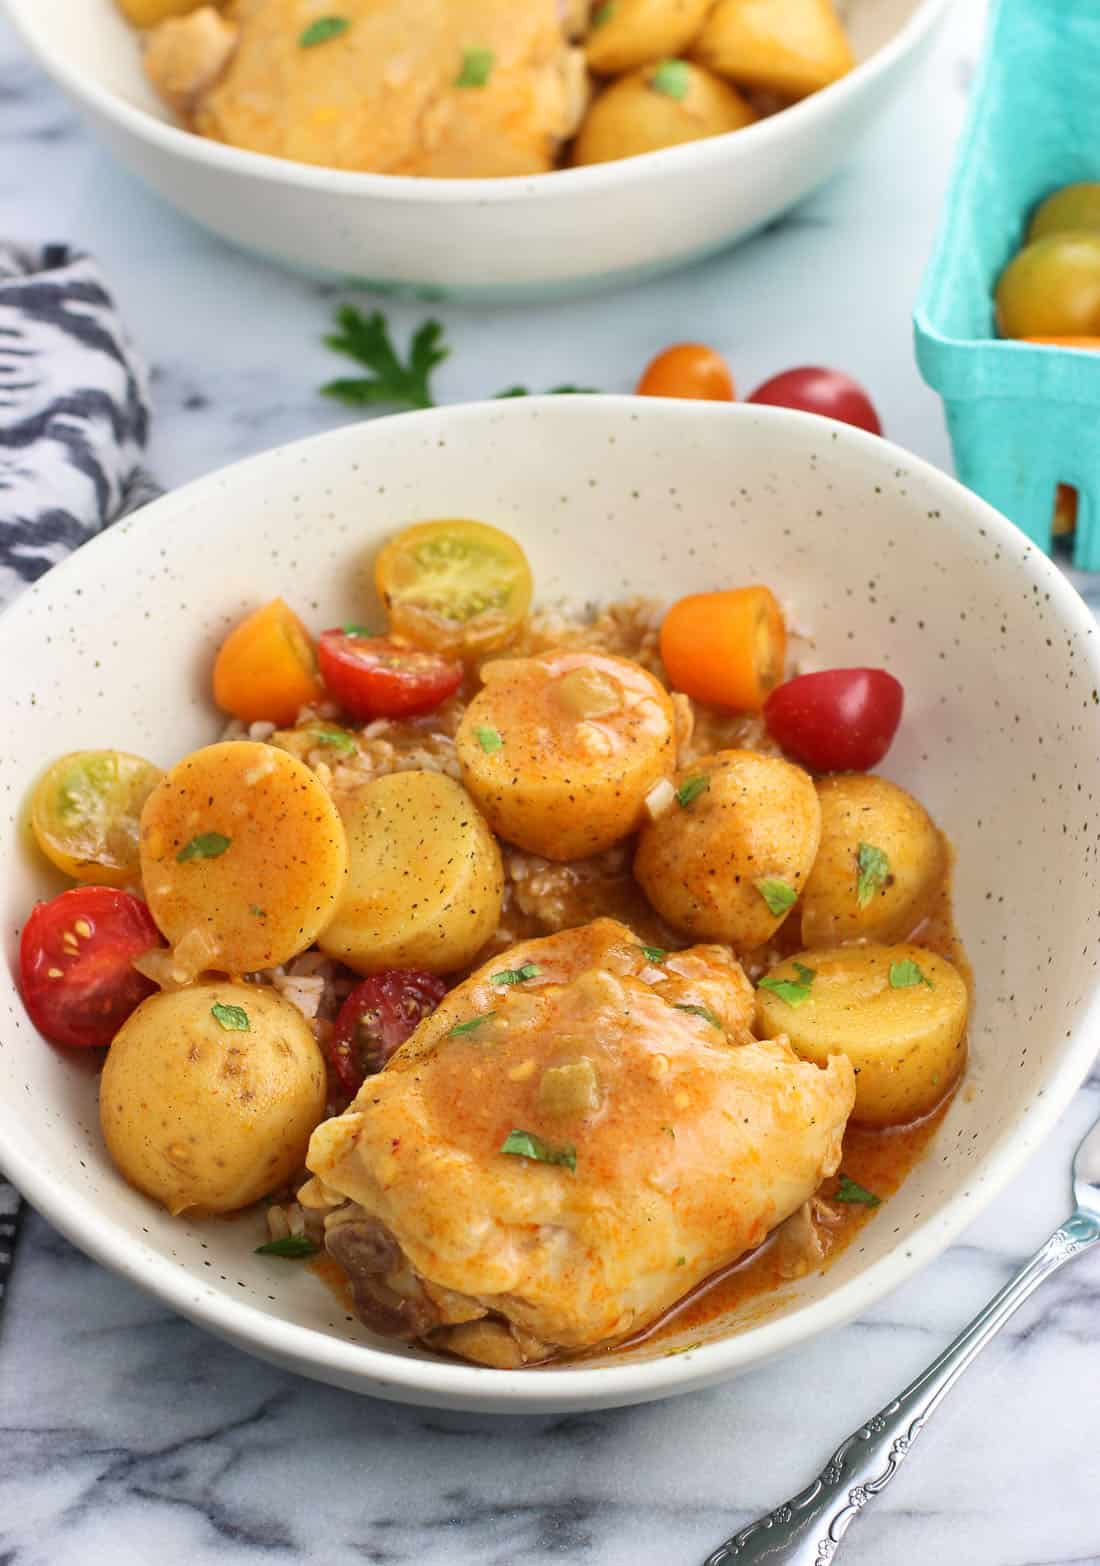 A chicken thigh, roasted potatoes, tomatoes, and sauce in a dinner bowl.